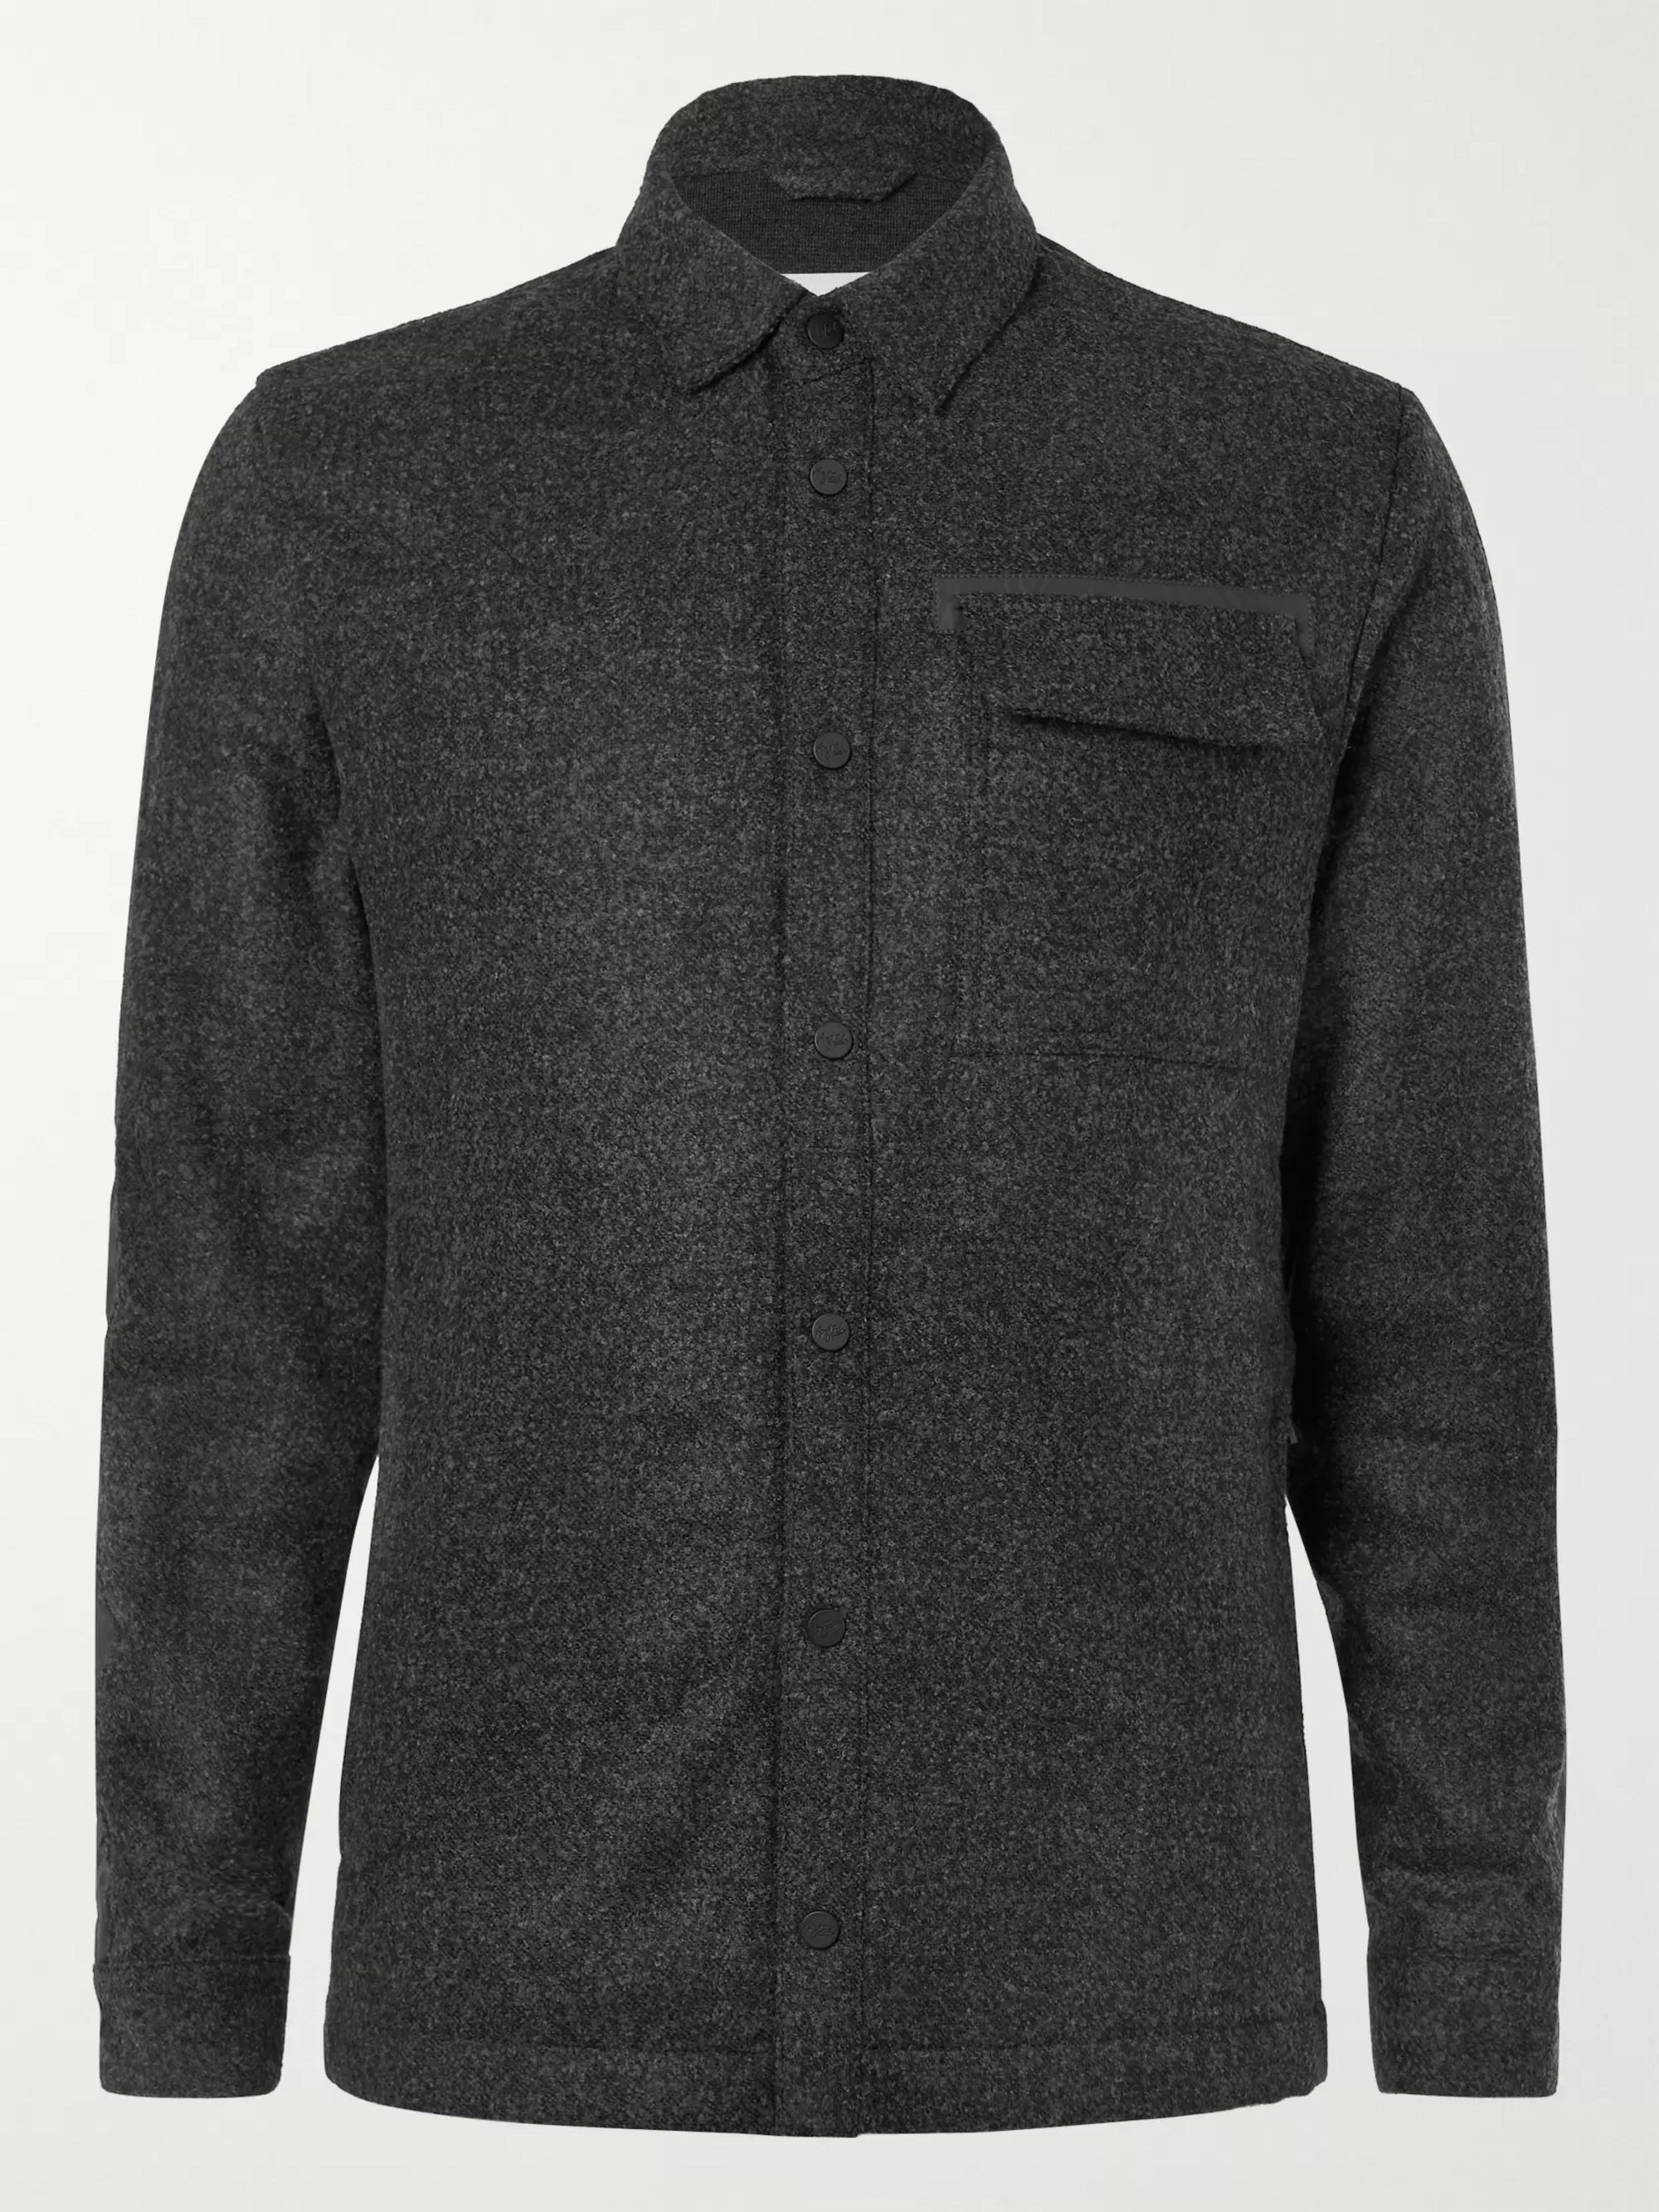 Charcoal Sopris Panelled Wool and Nylon Shirt | Aztech Mountain | MR PORTER